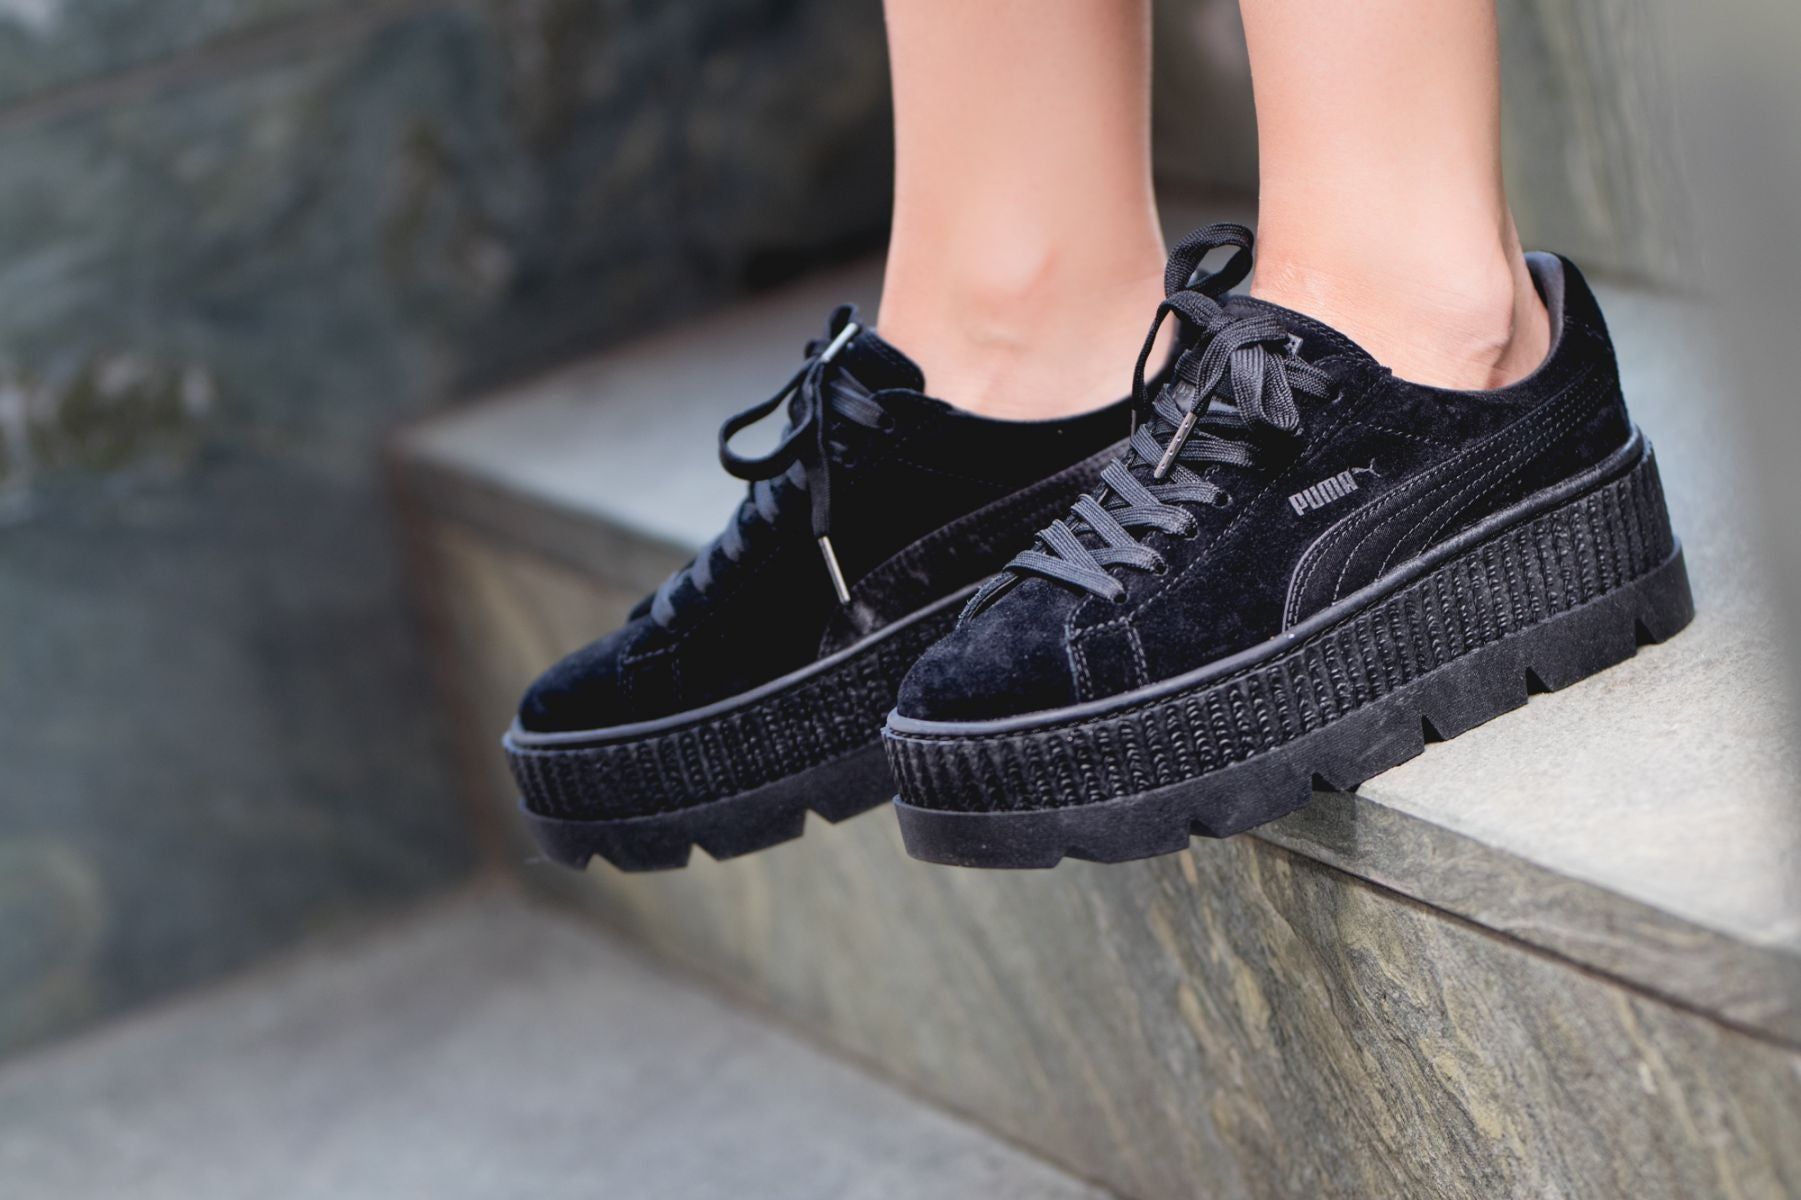 best service d51e3 c76f7 Rihanna x Puma Fenty Cleated Creeper 'Puma Black'